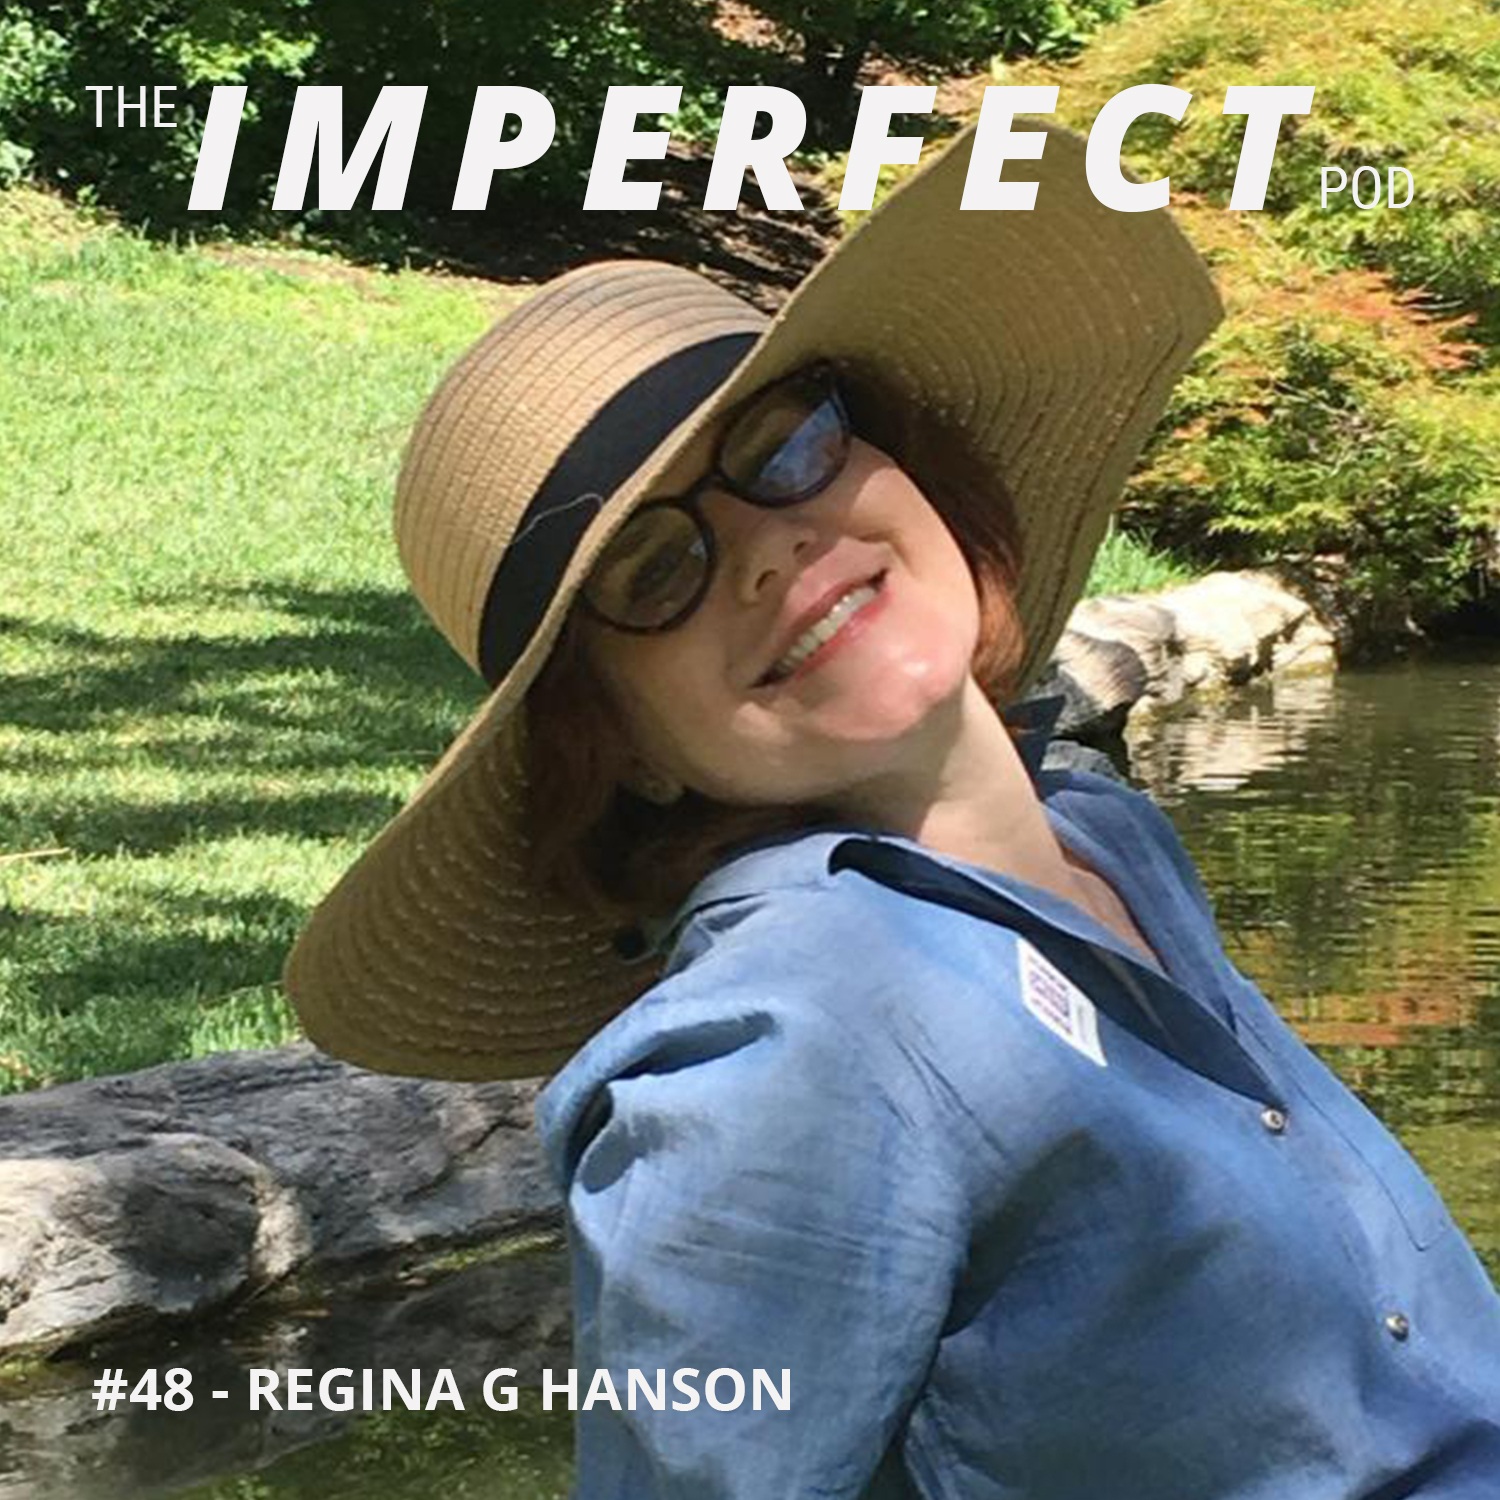 #48 | Conversations About Masculinity With A Feminist | Regina G. Hanson